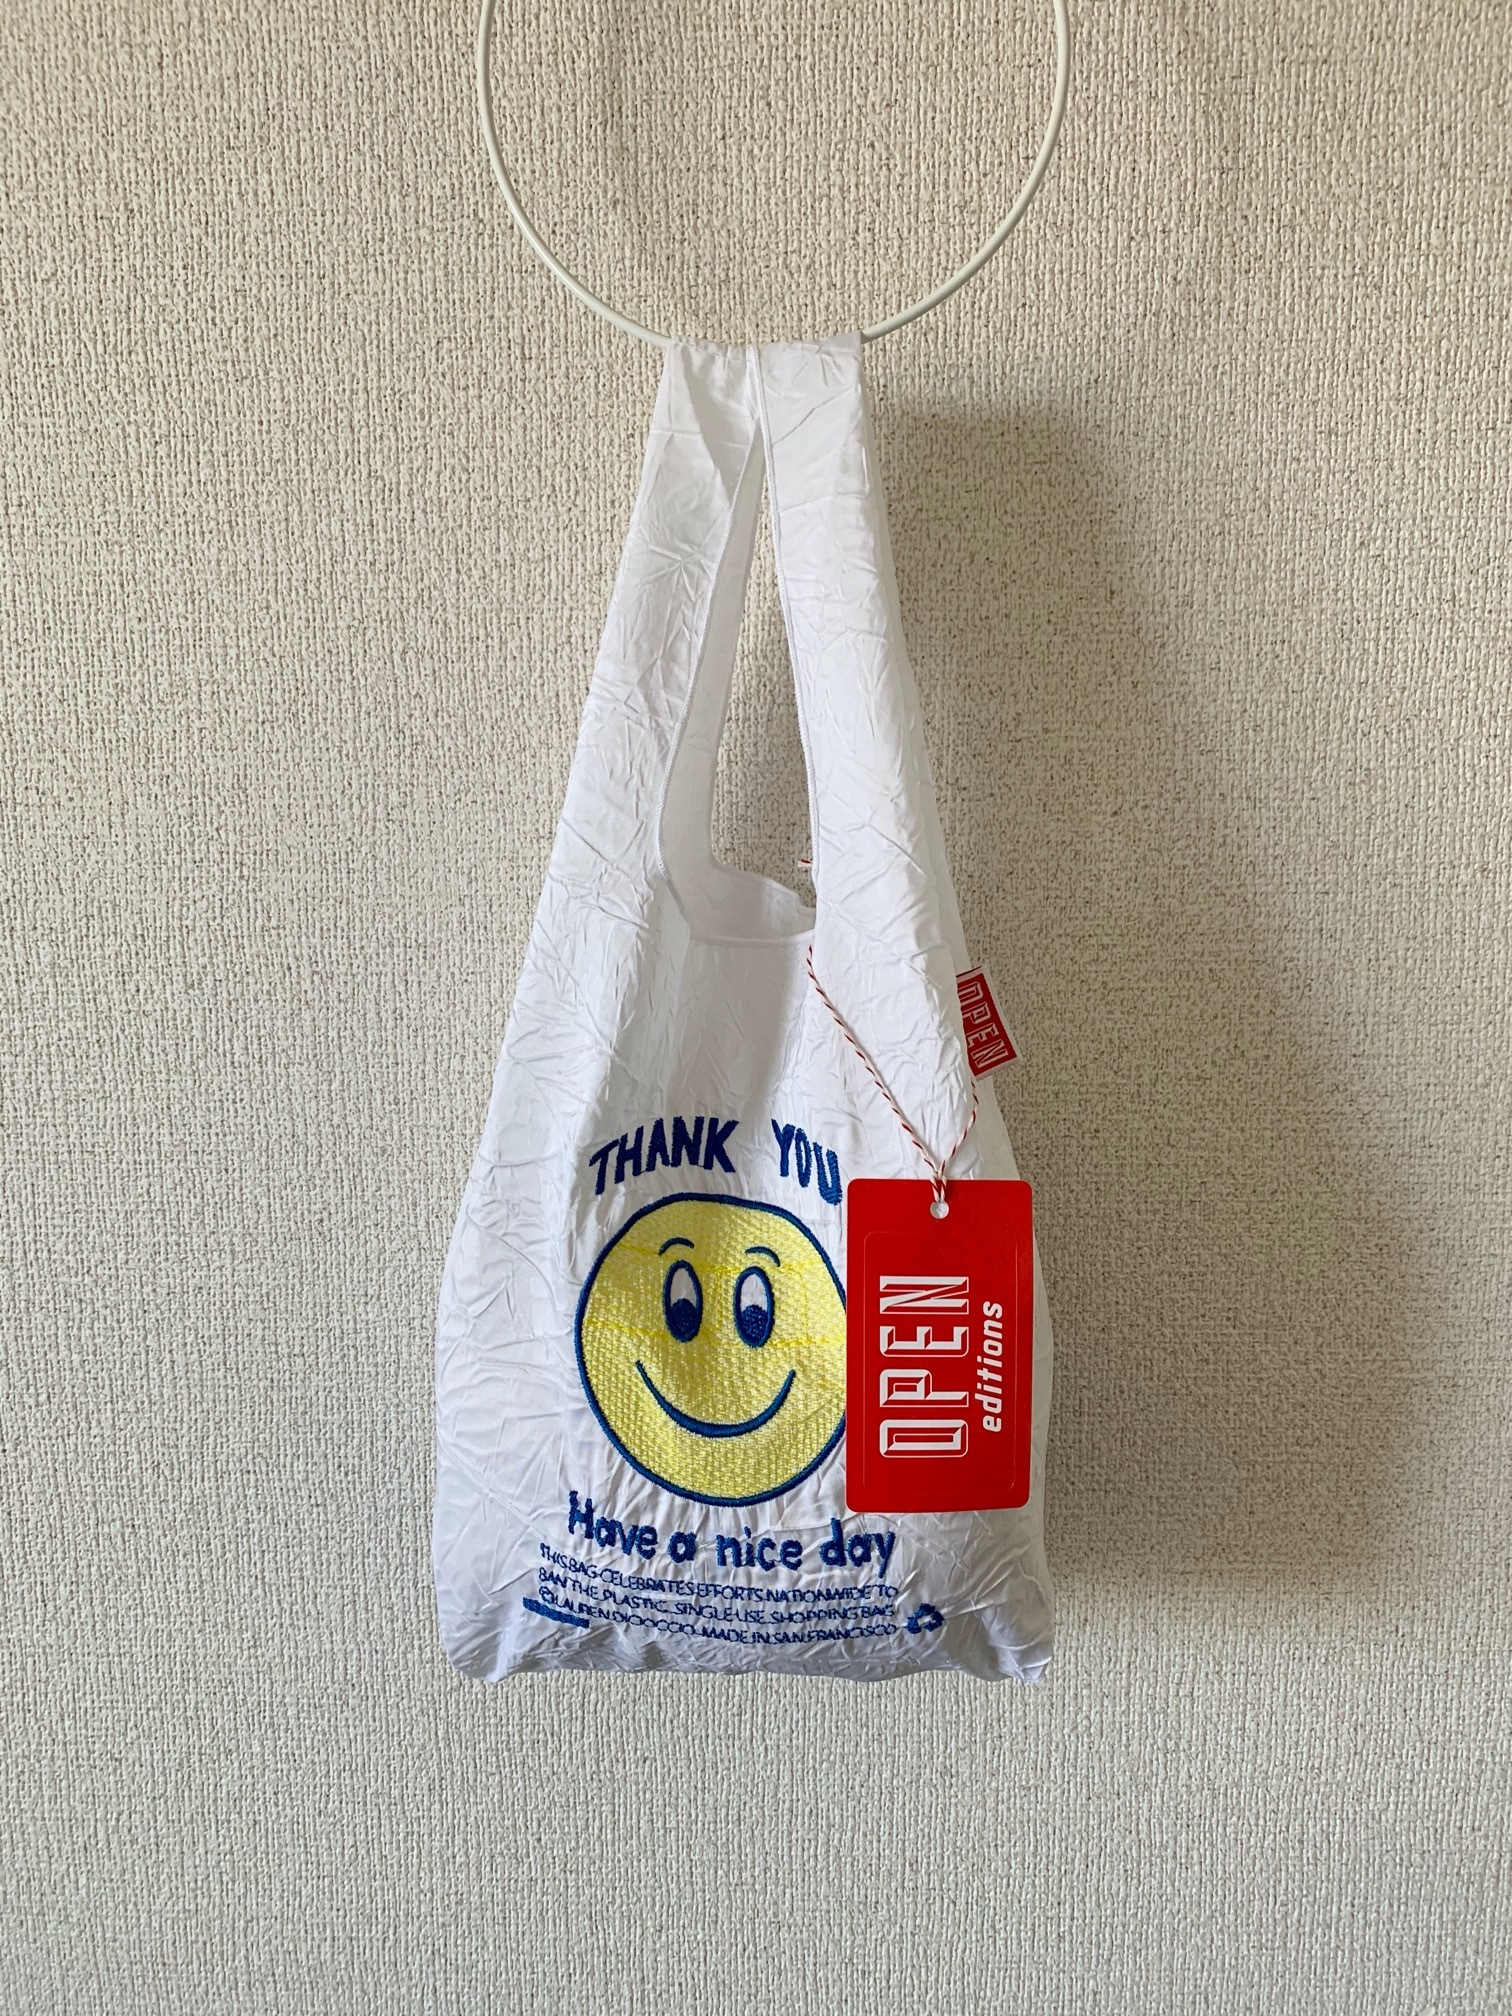 【OPEN EDITIONS】THANK YOU MINI エコバッグ/ SMILE White